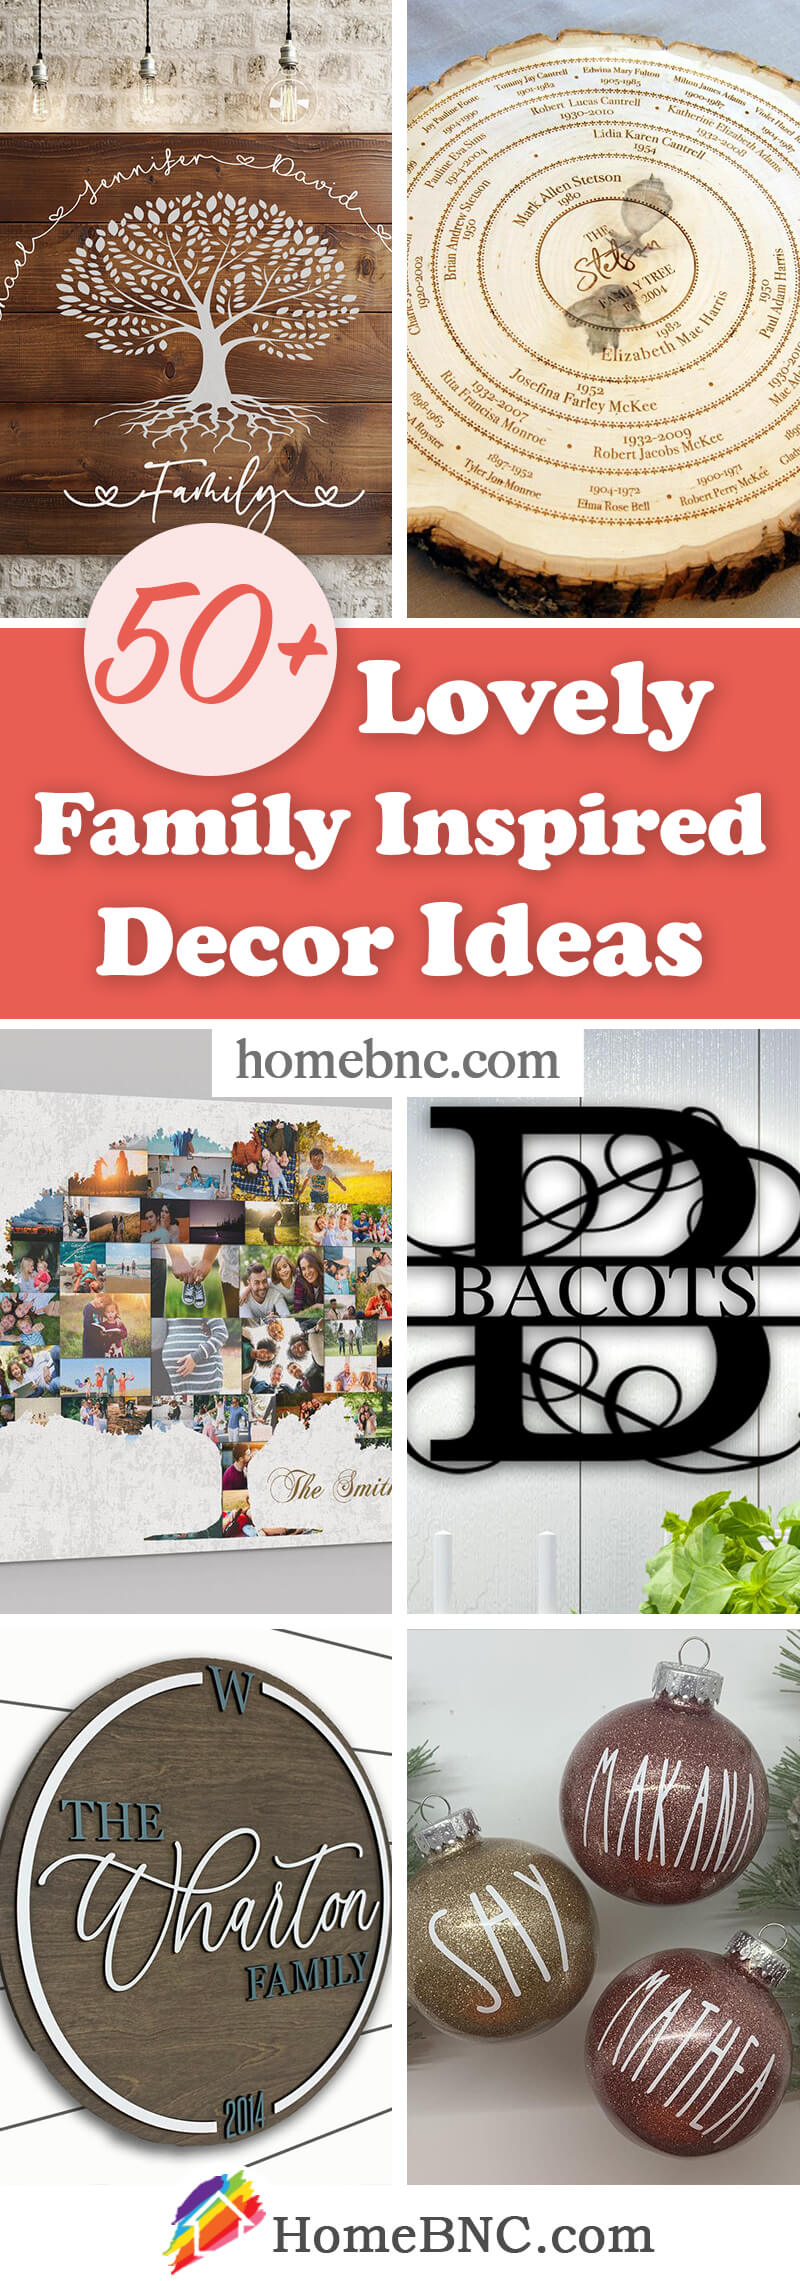 Family Inspired Home Decorations